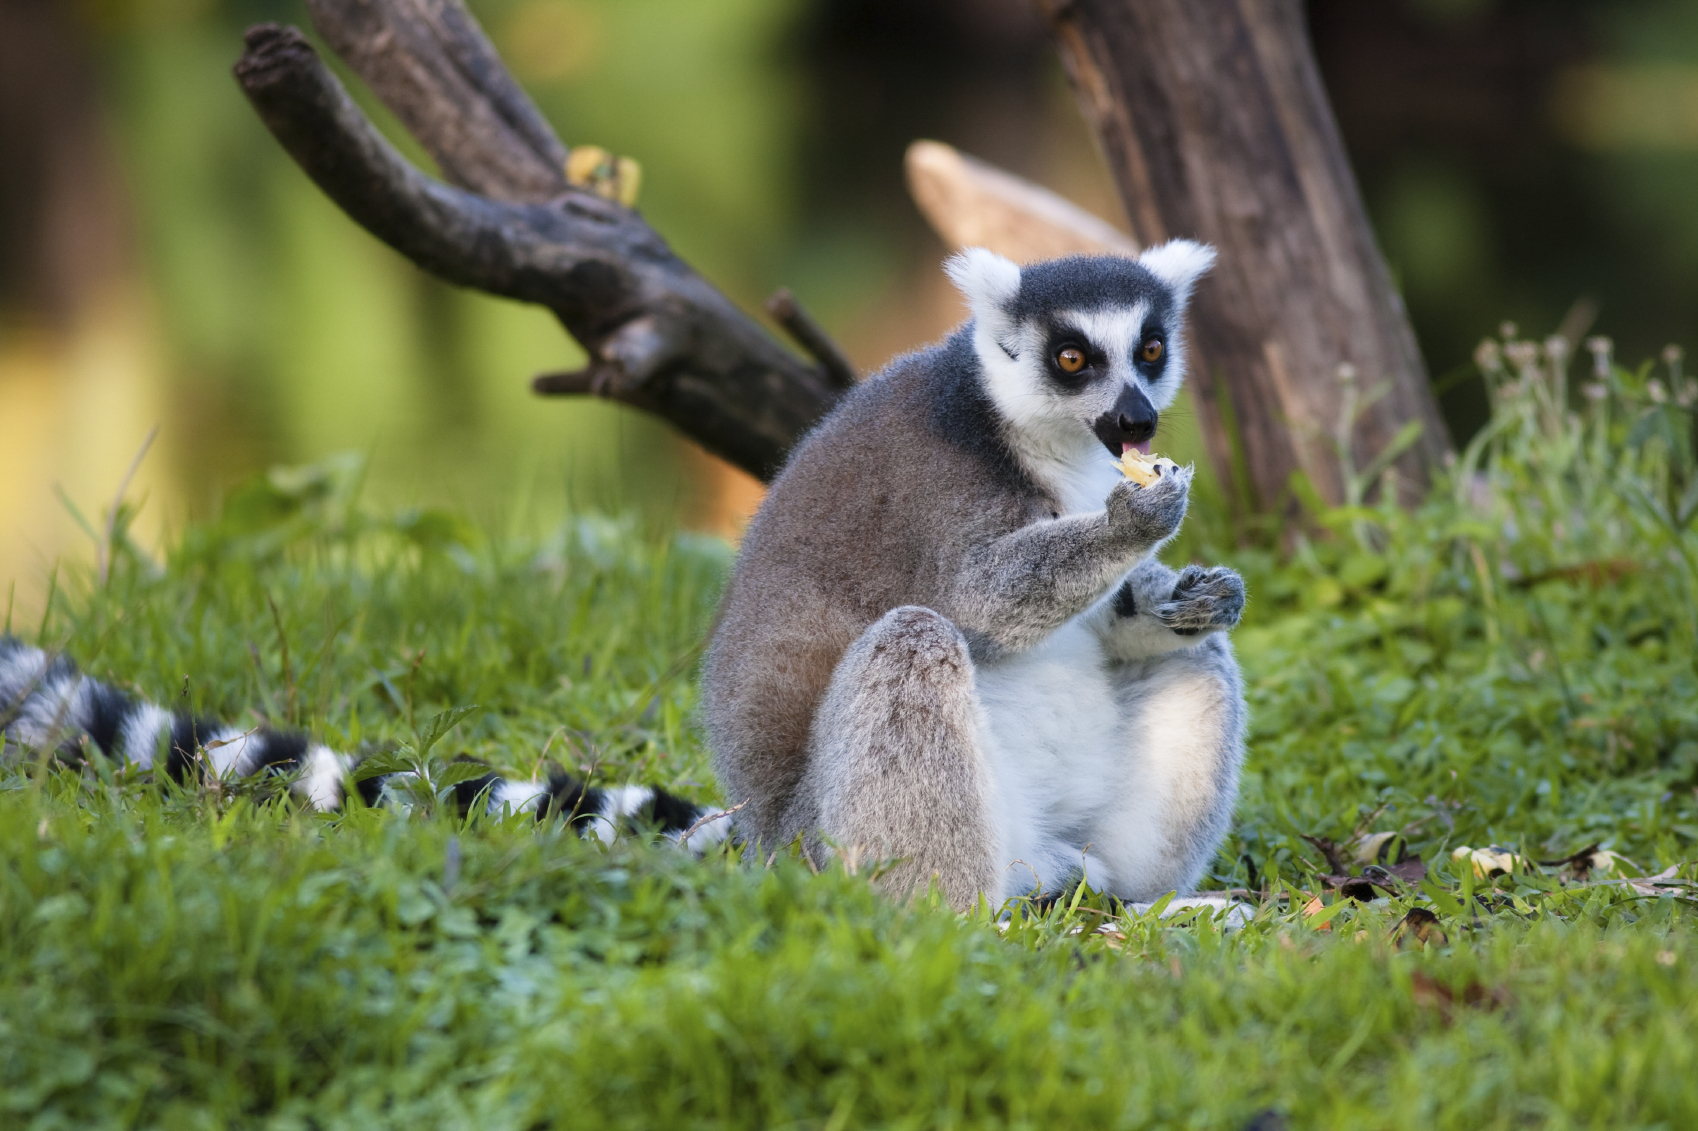 The diet of a lemur consists mostly of leaves and fruit.